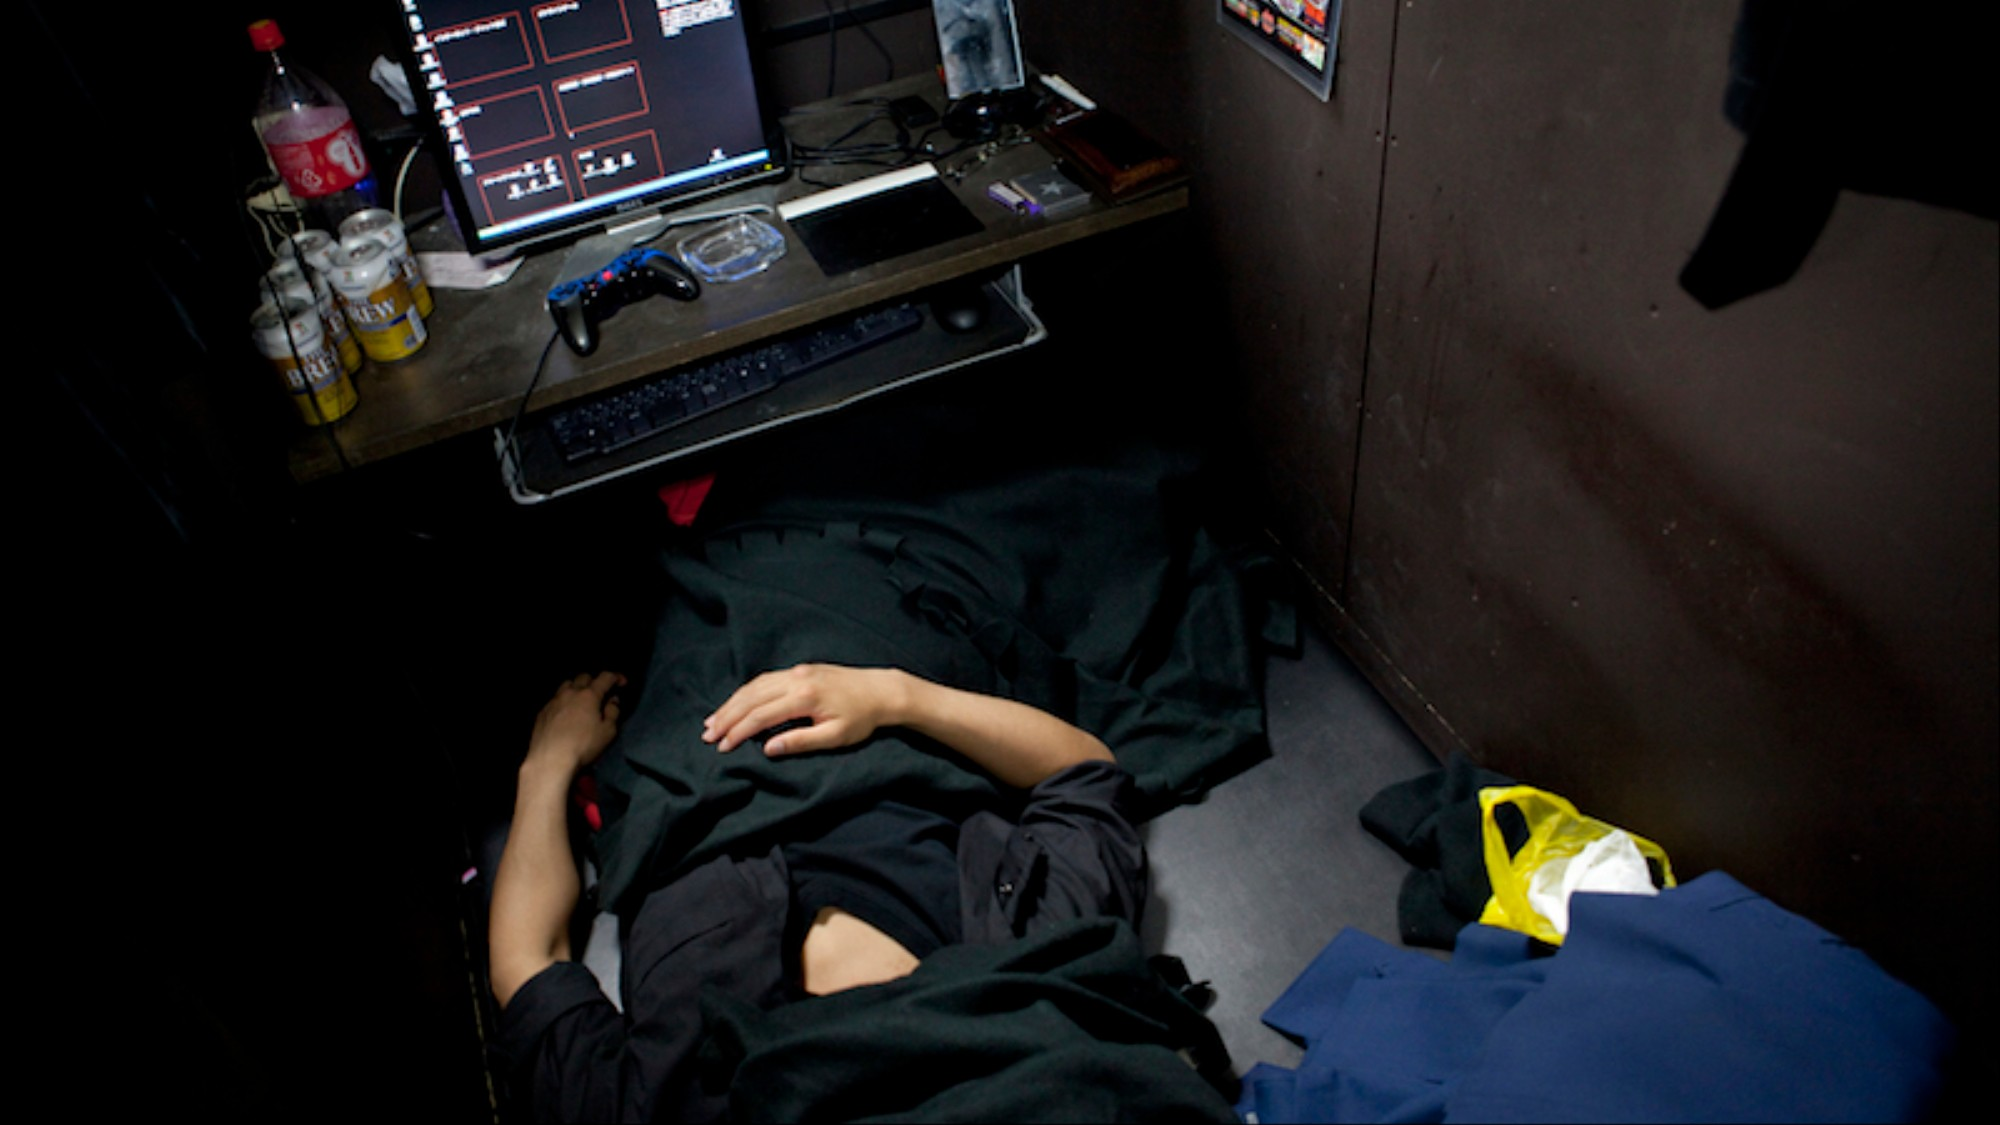 The Japanese Workers Who Live in Internet Cafes - VICE